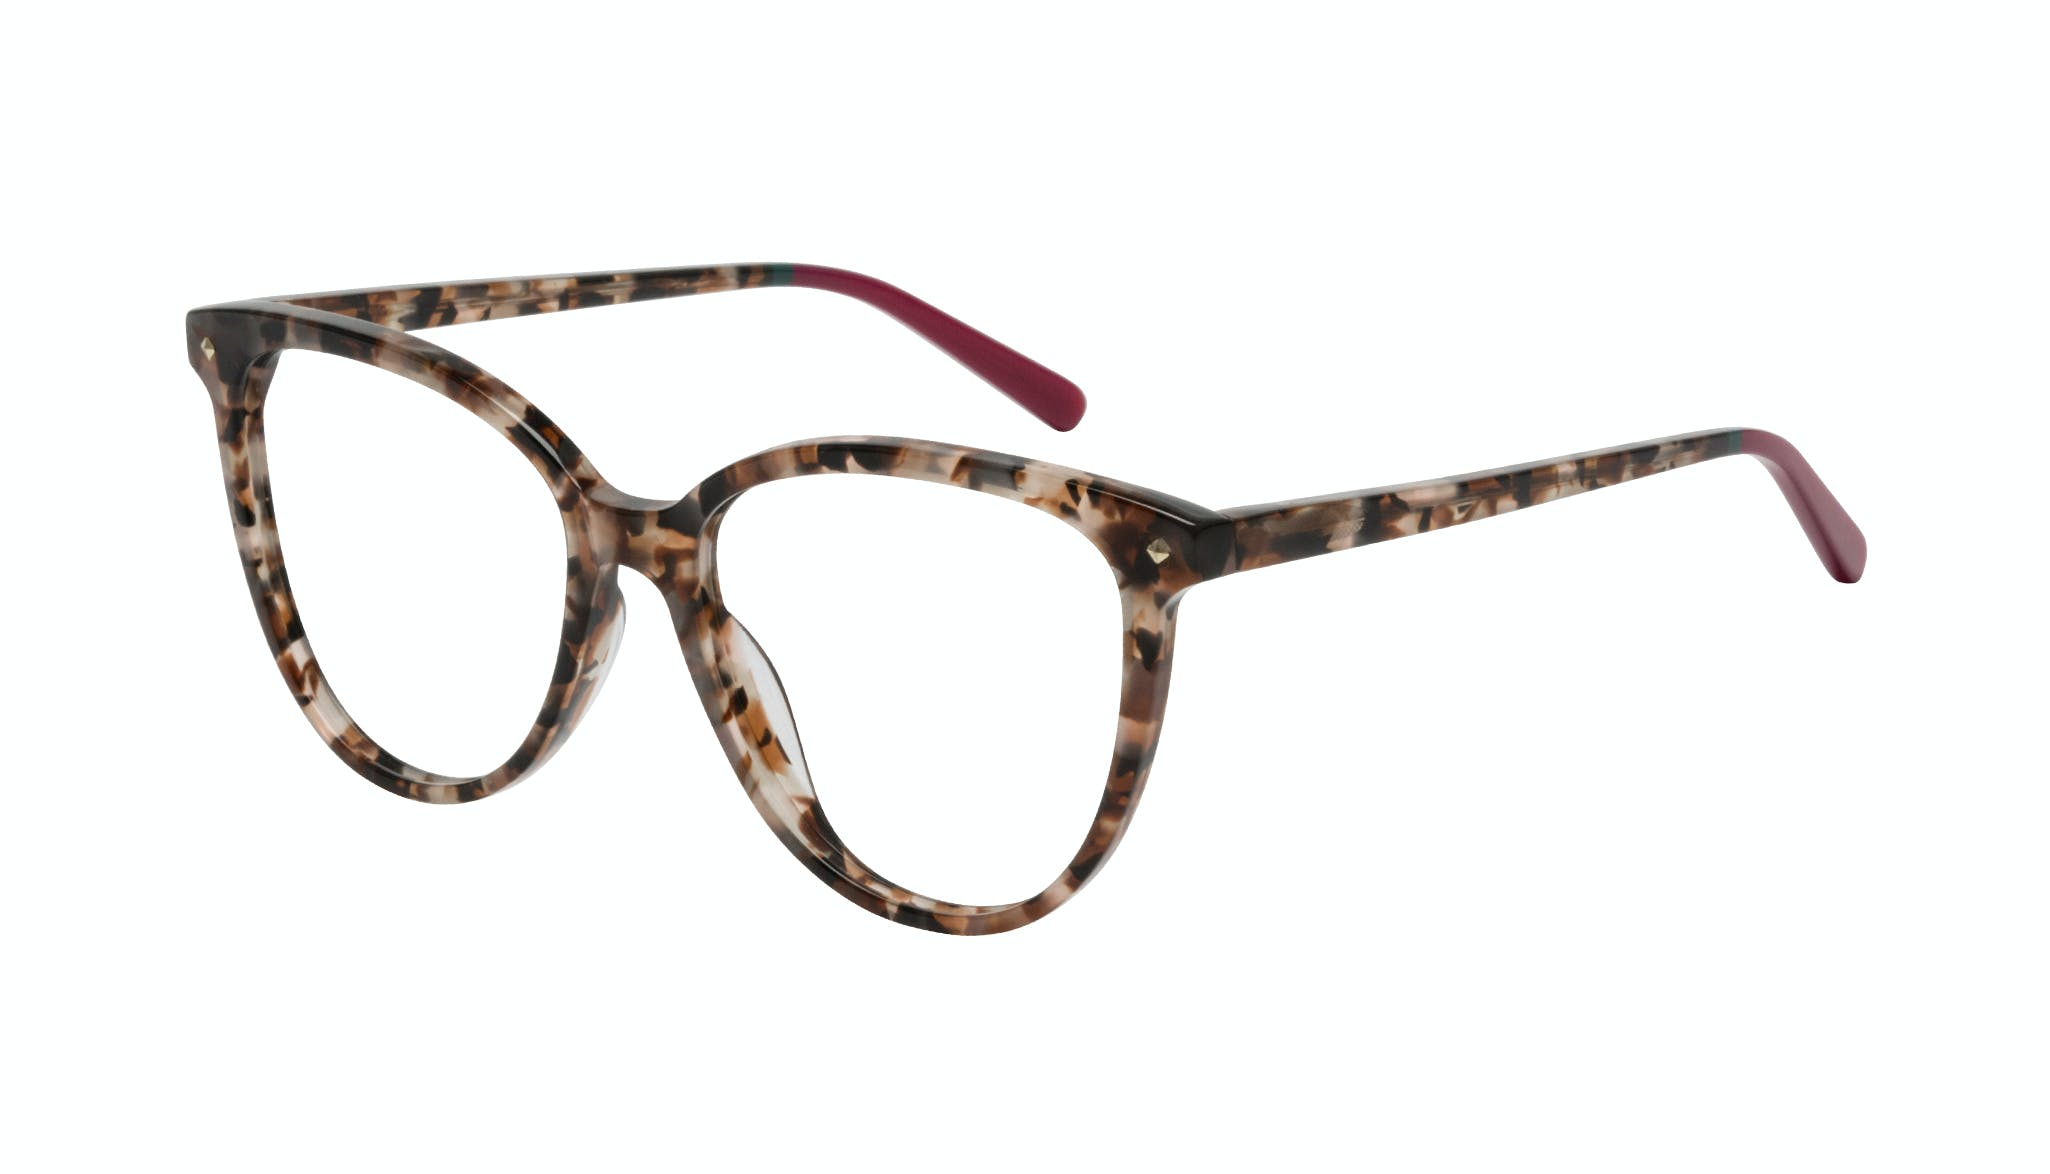 Affordable Fashion Glasses Cat Eye Eyeglasses Women Jane Pink Tortoise Tilt